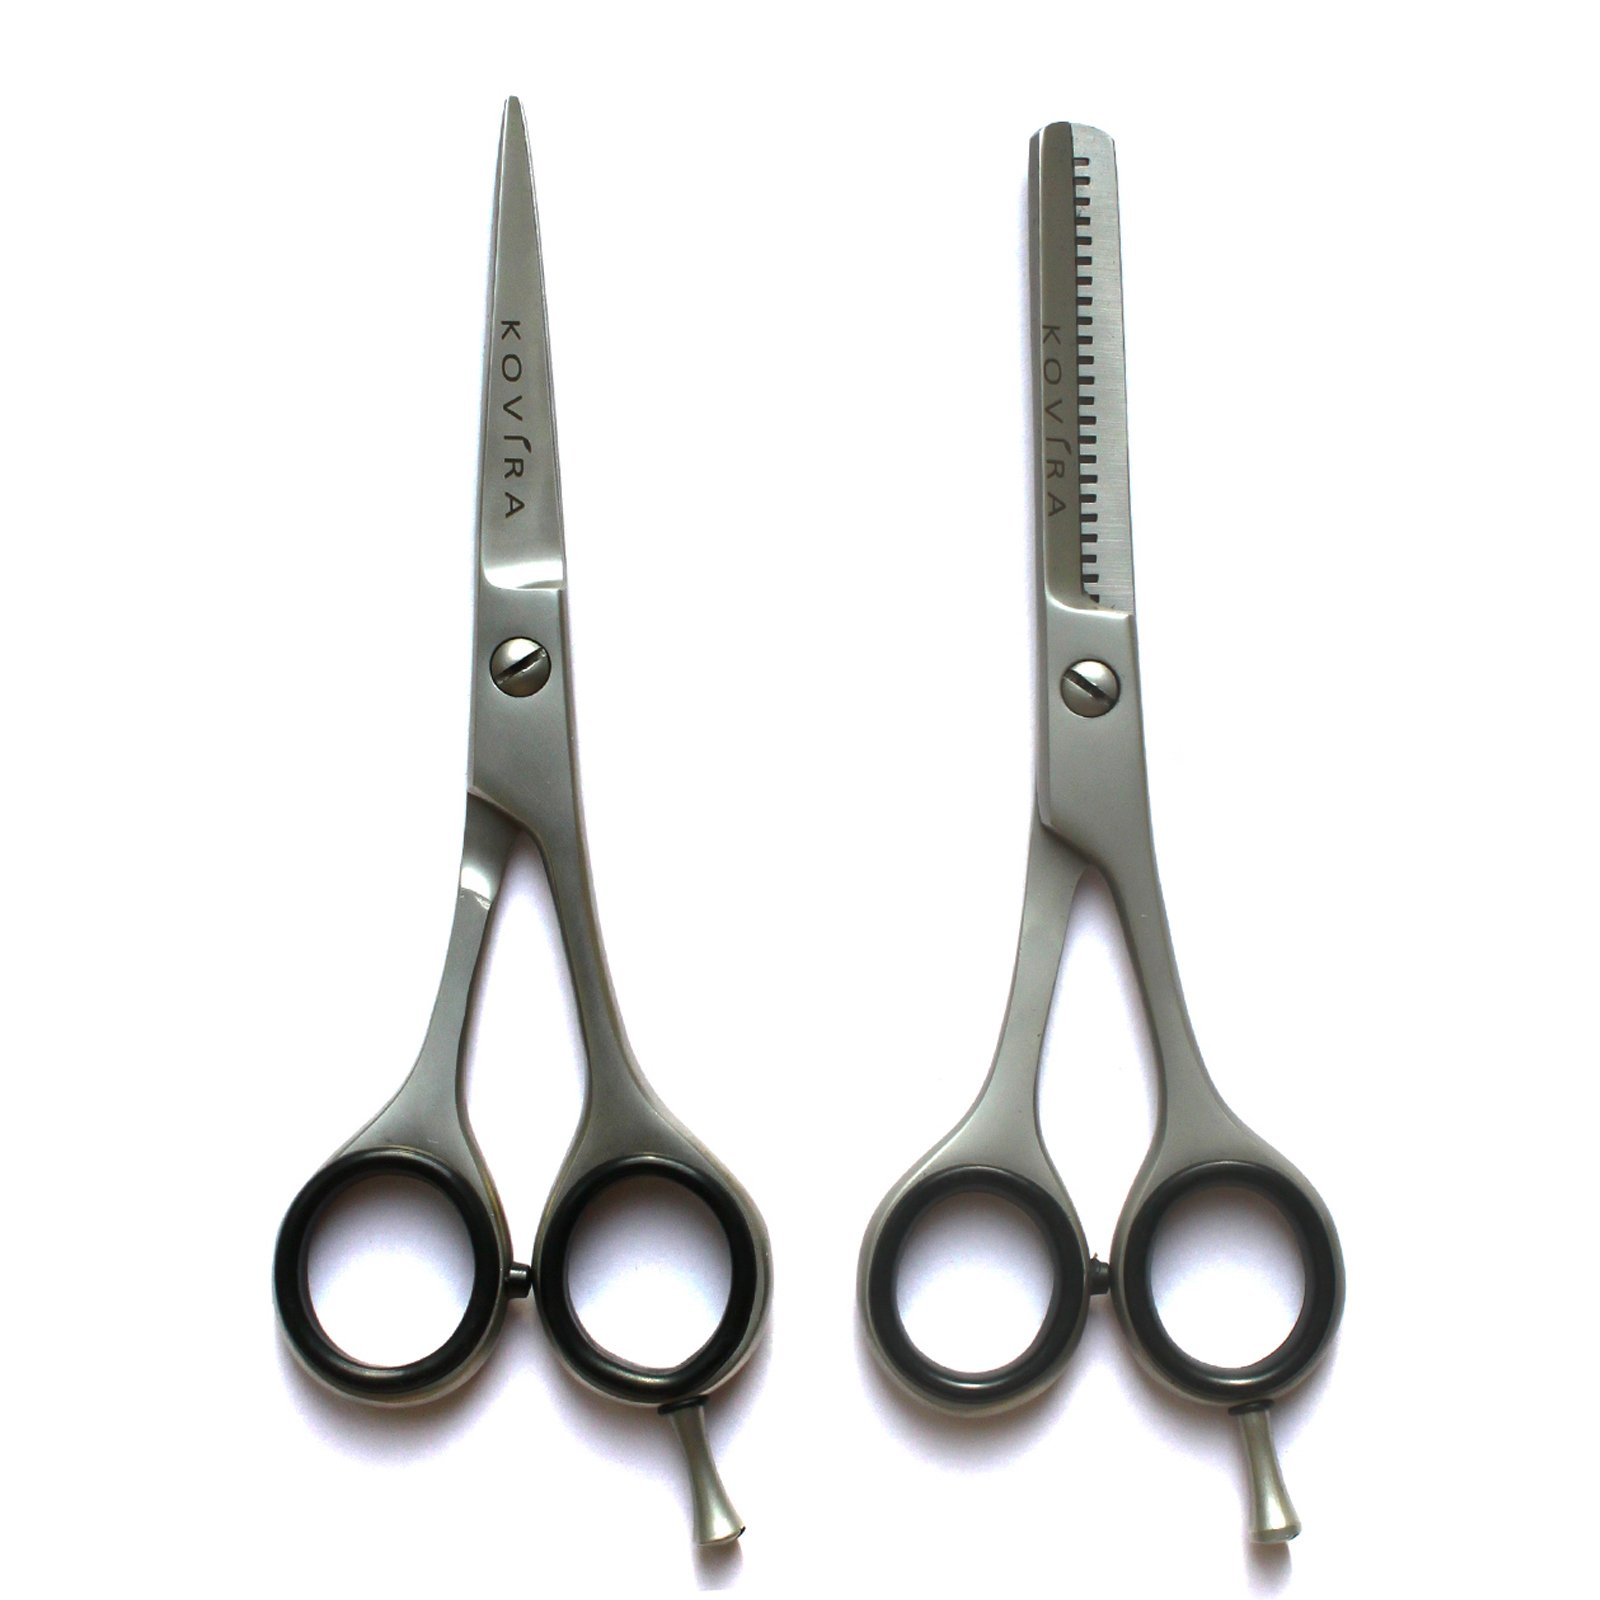 Professional Hairdressing Scissors/Thinning Shears/Hair scissors - Barber Hair Cutting Scissors for Thinning/Texturing Scissors - Razor Sharp Japanese Stainless Steel & Fine Adjustment Tension Screw by Kovira (Image #5)